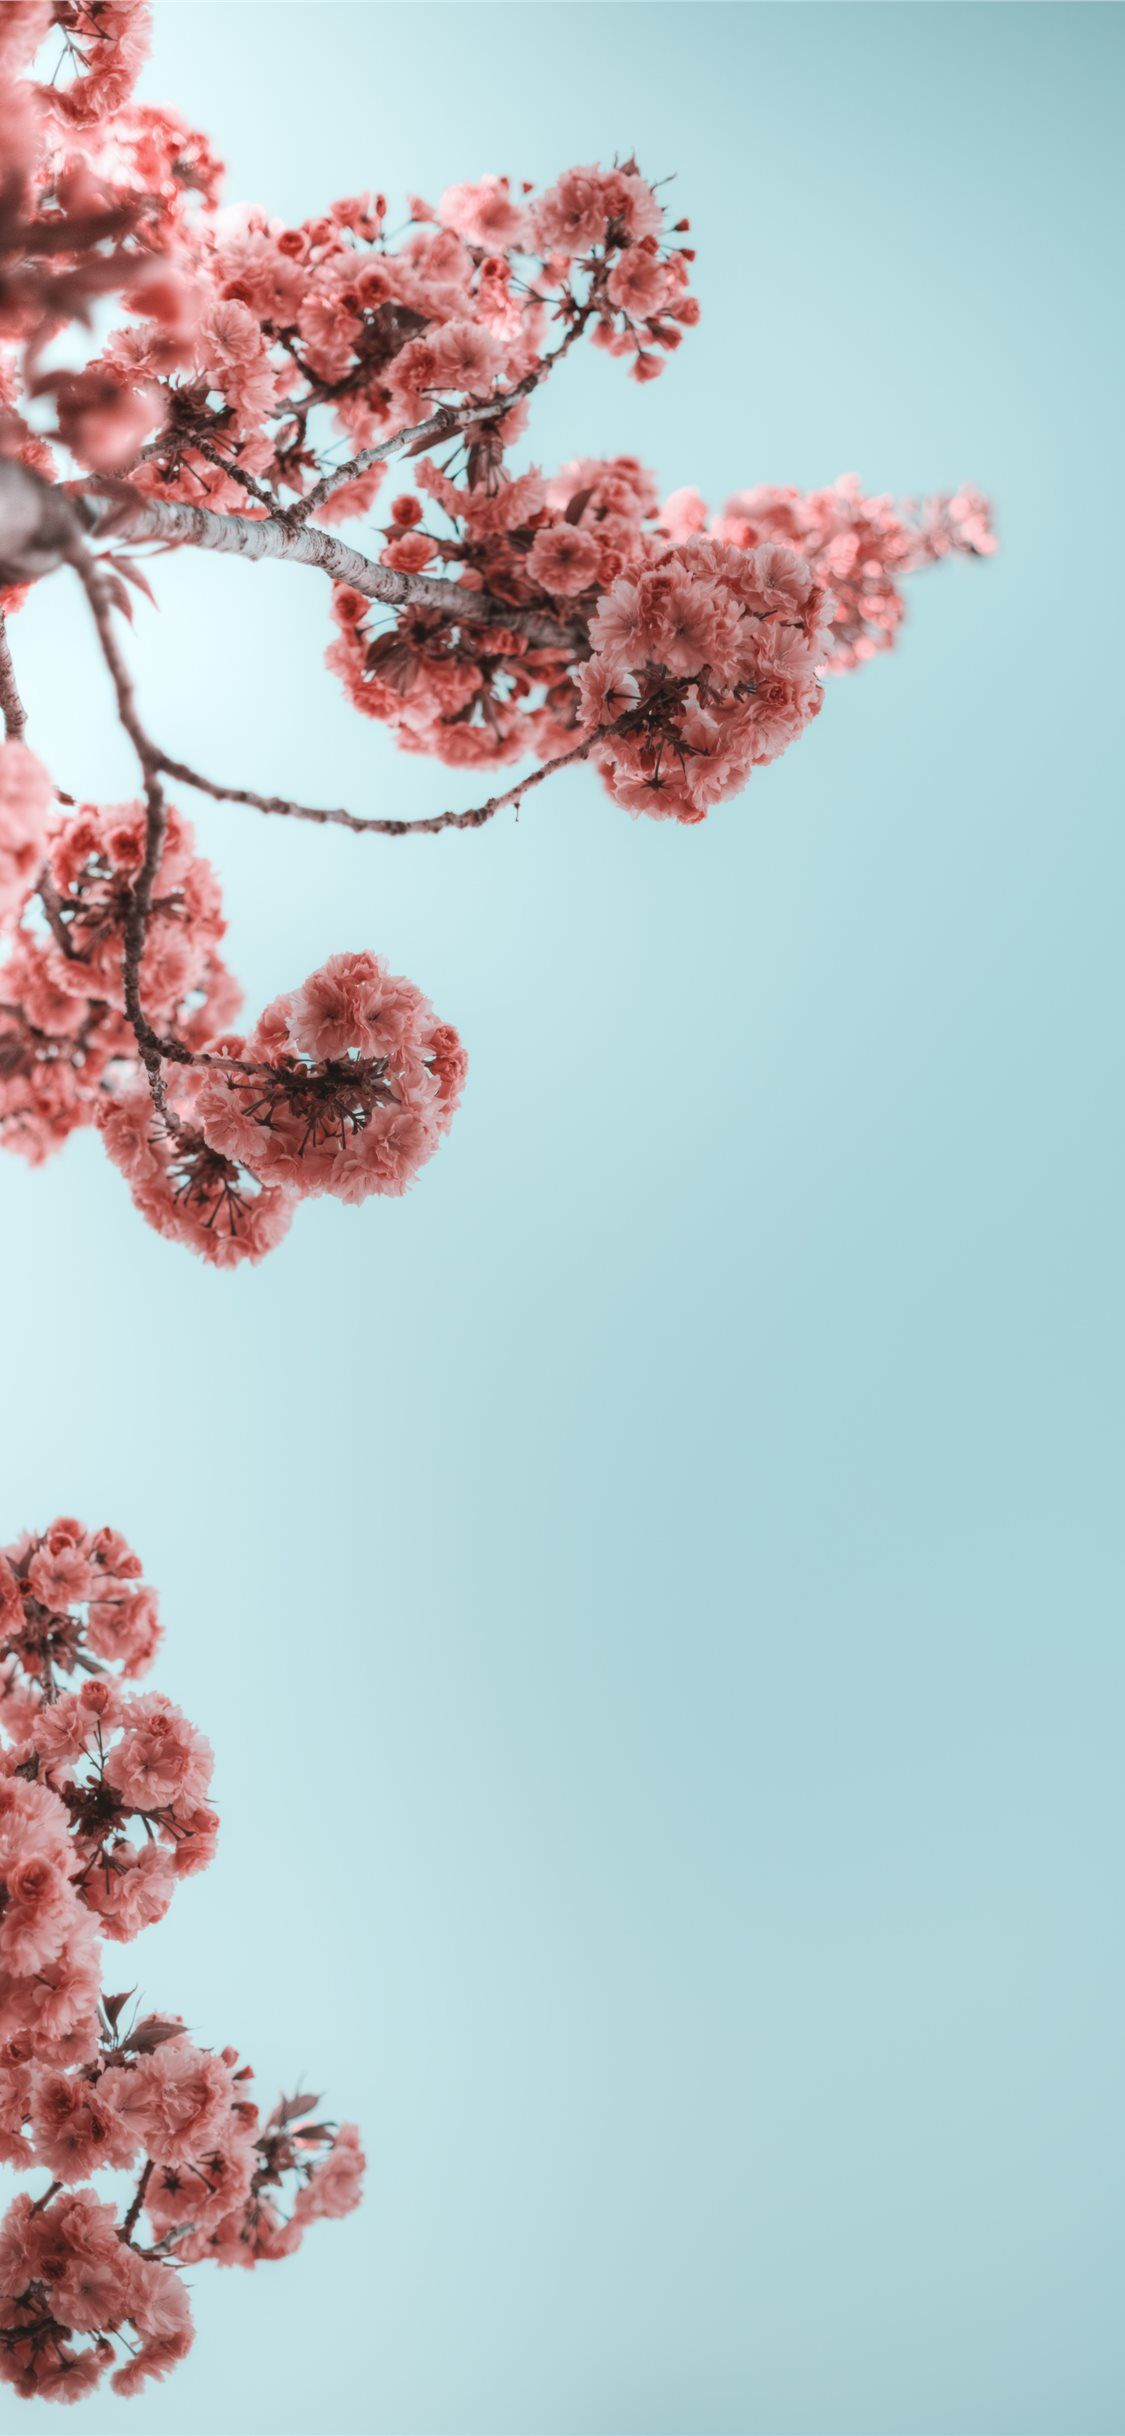 Spring Wallpaper Iphone 11 Pro Max Total Update